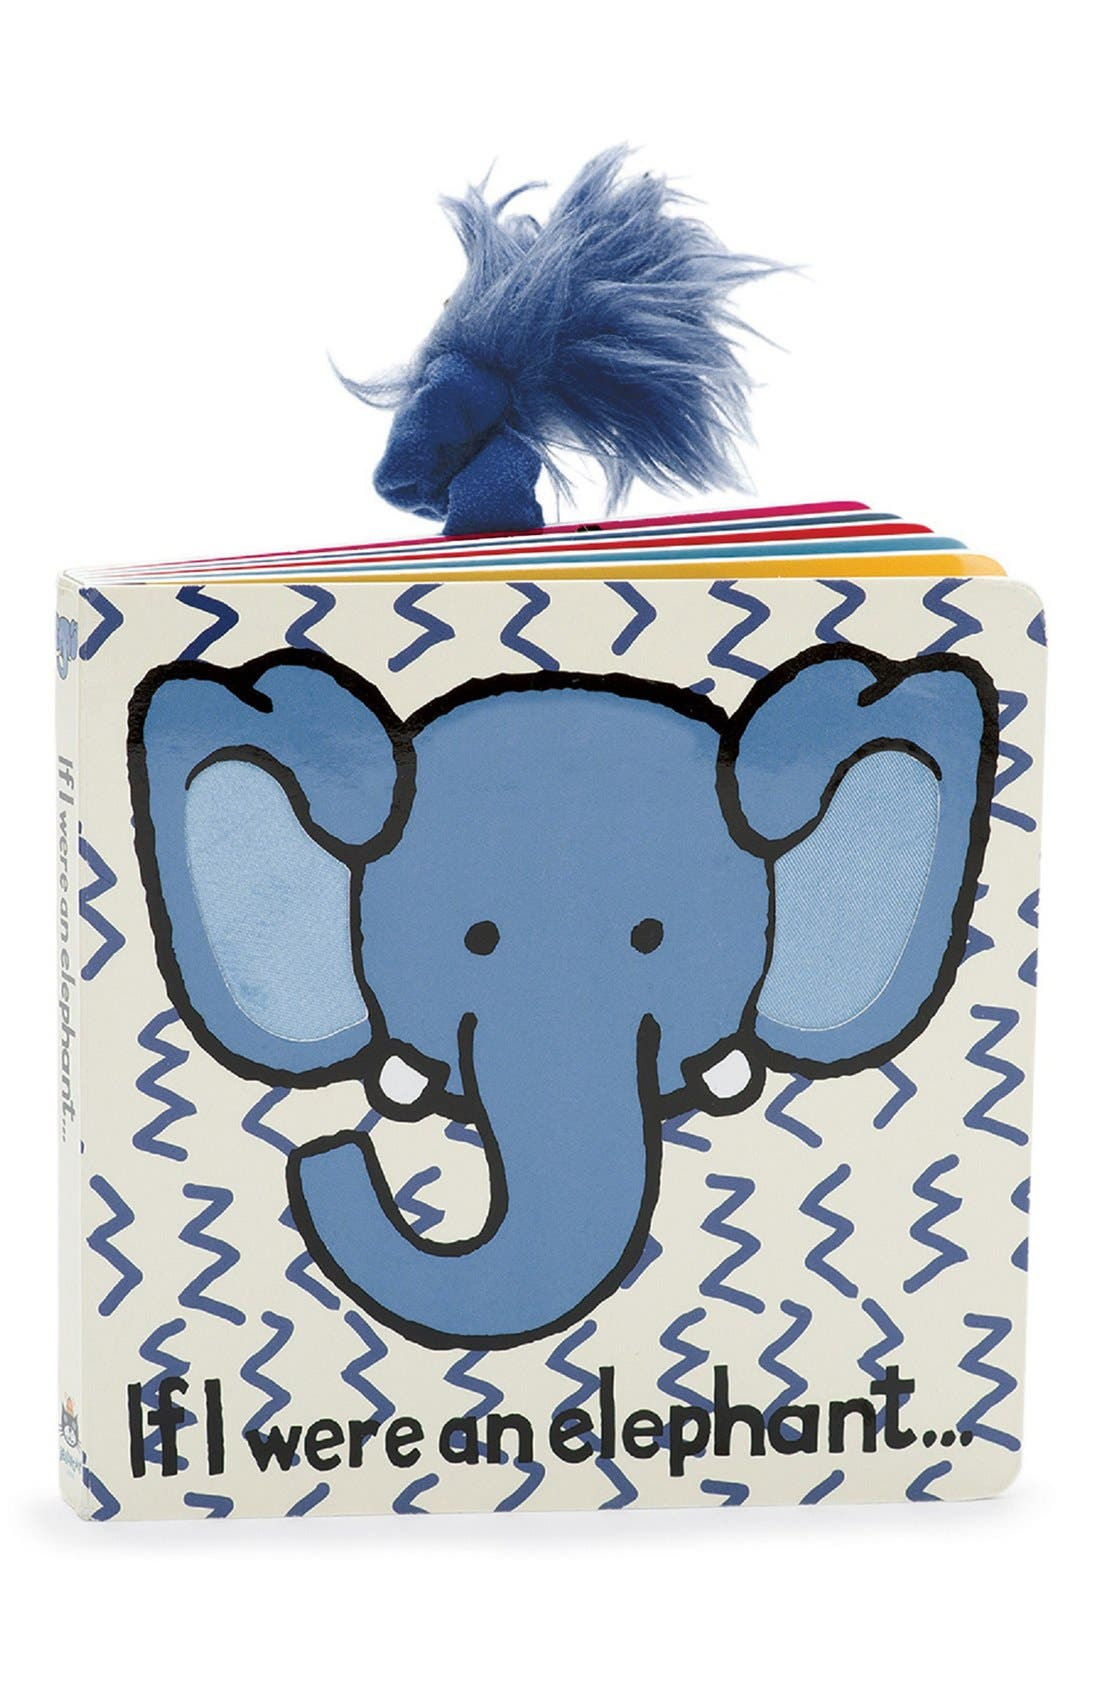 JELLYCAT 'If I Were an Elephant' Board Book